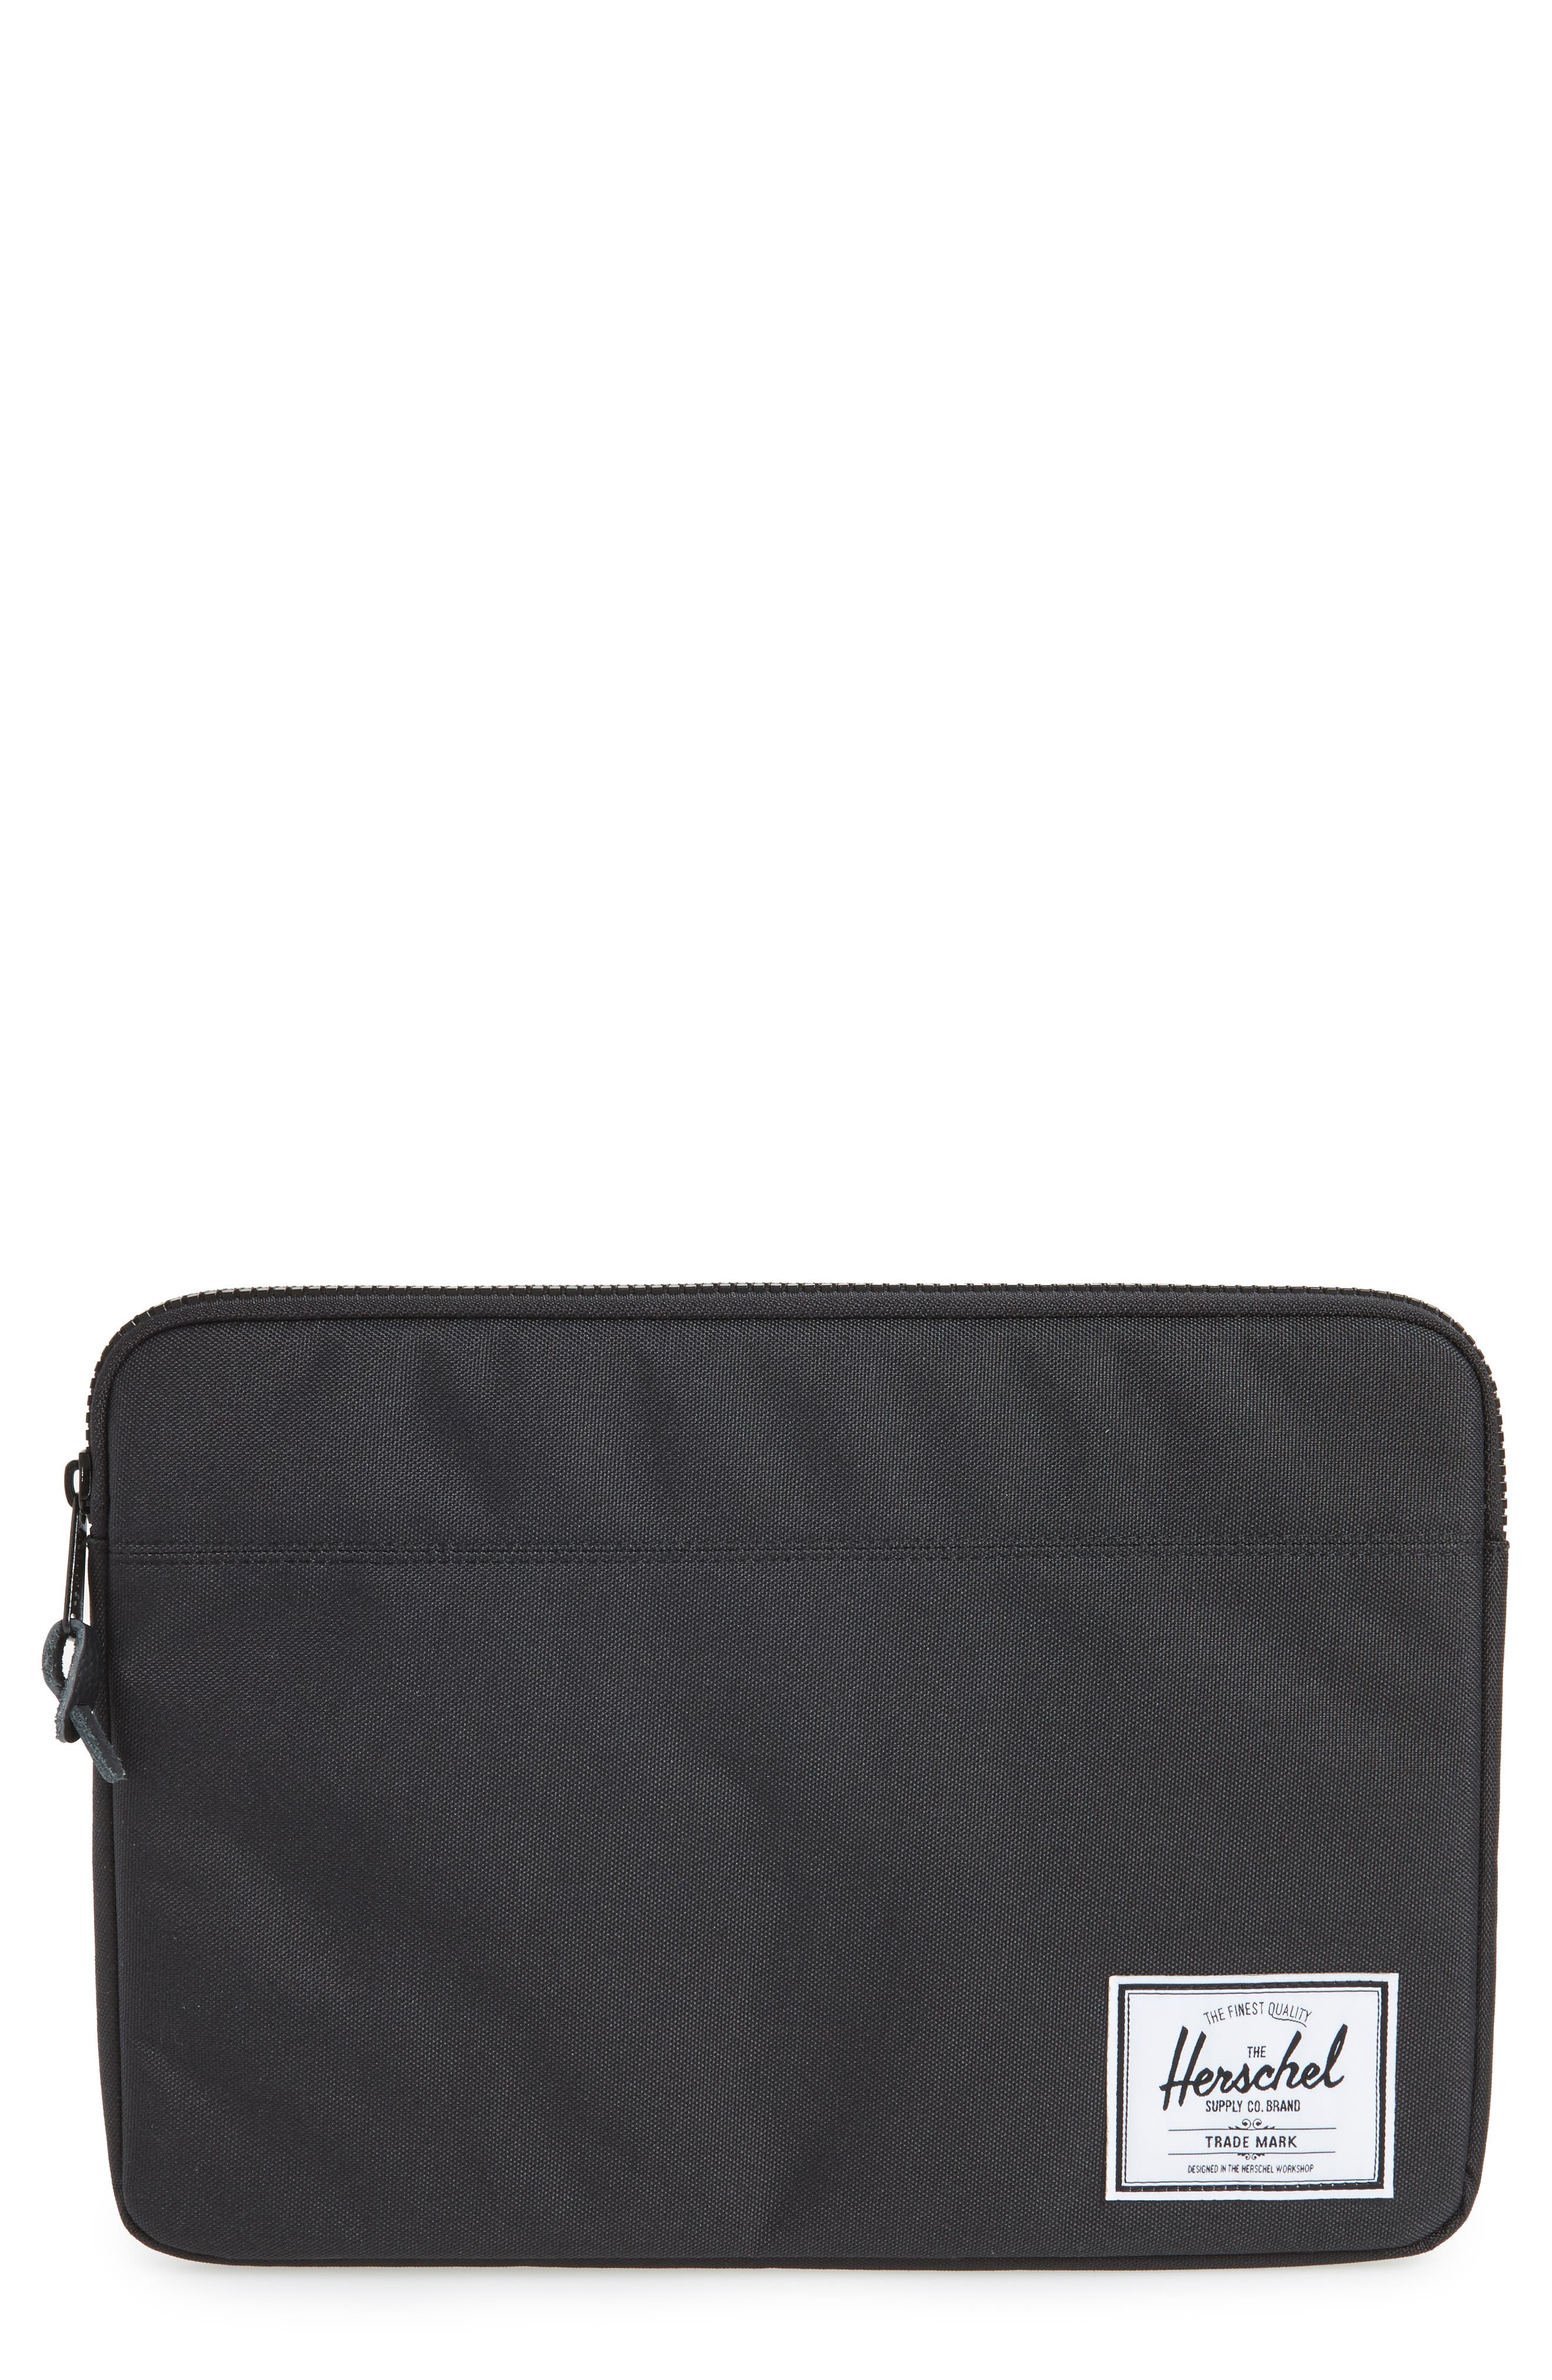 Alternate Image 1 Selected - Herschel Supply Co. Anchor Laptop Sleeve